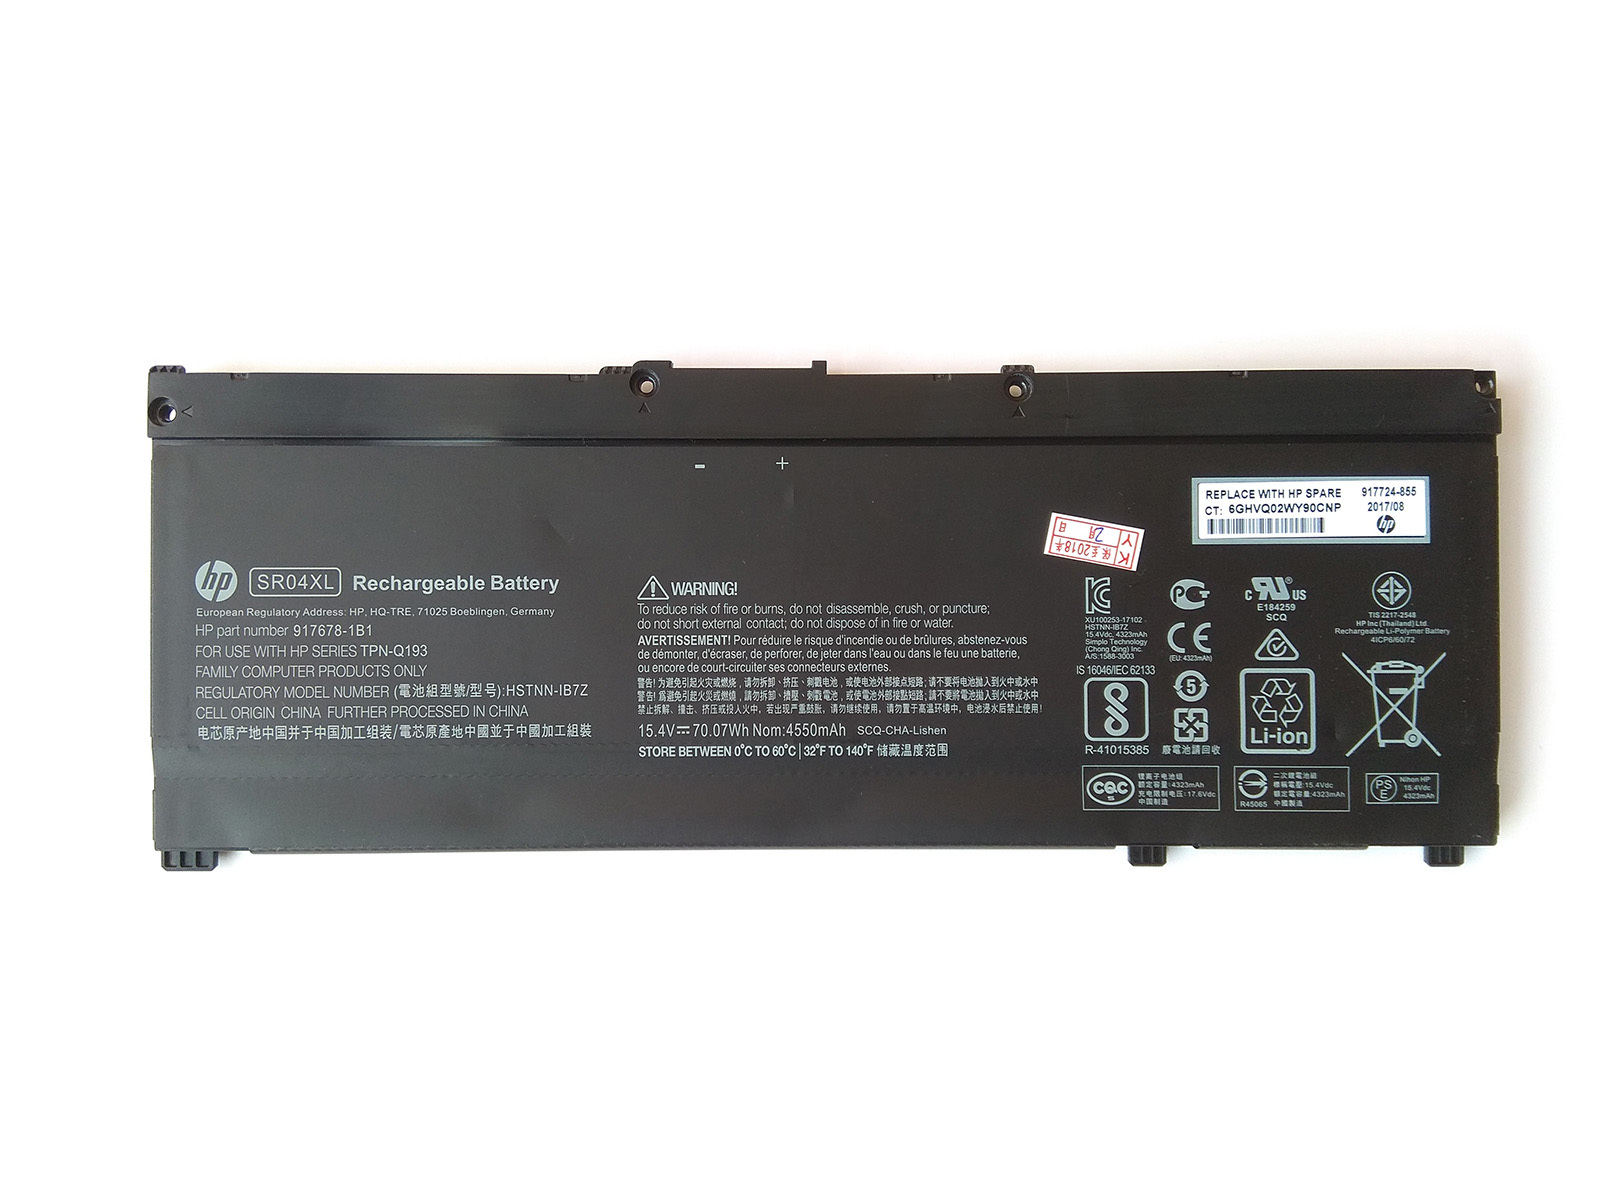 Primary image for HP Omen 15-CE007UR 1ZB01EA Battery SR04XL 917724-855 TPN-Q193